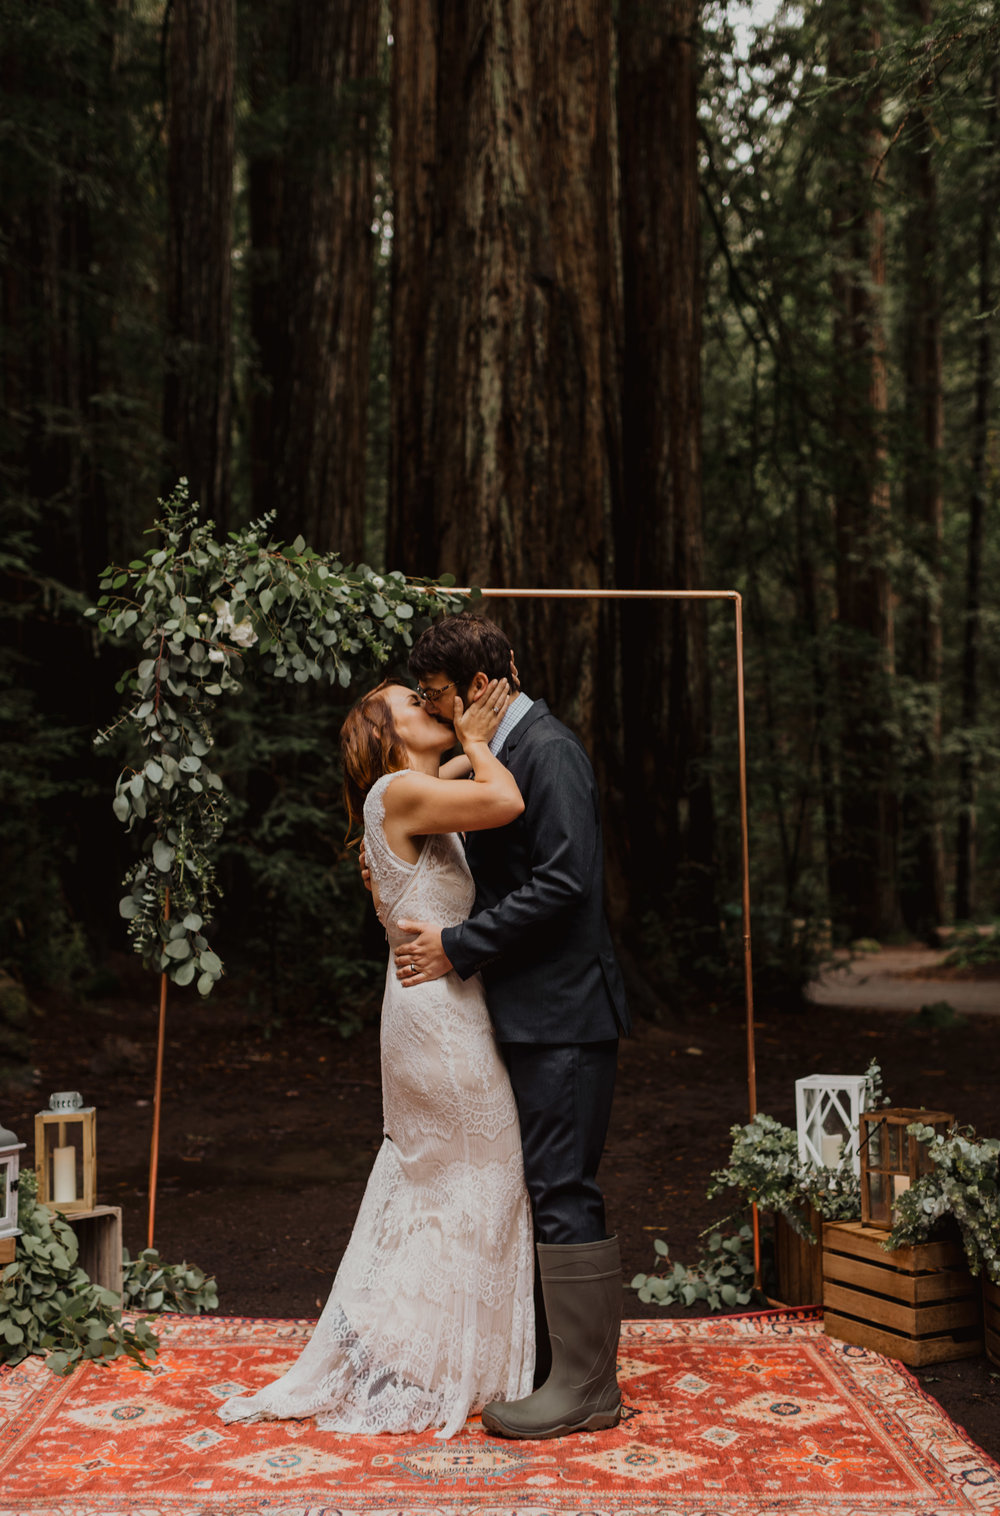 3b3c9d2f0c12c Jenni & Otto // Intimate Wedding in the Redwoods